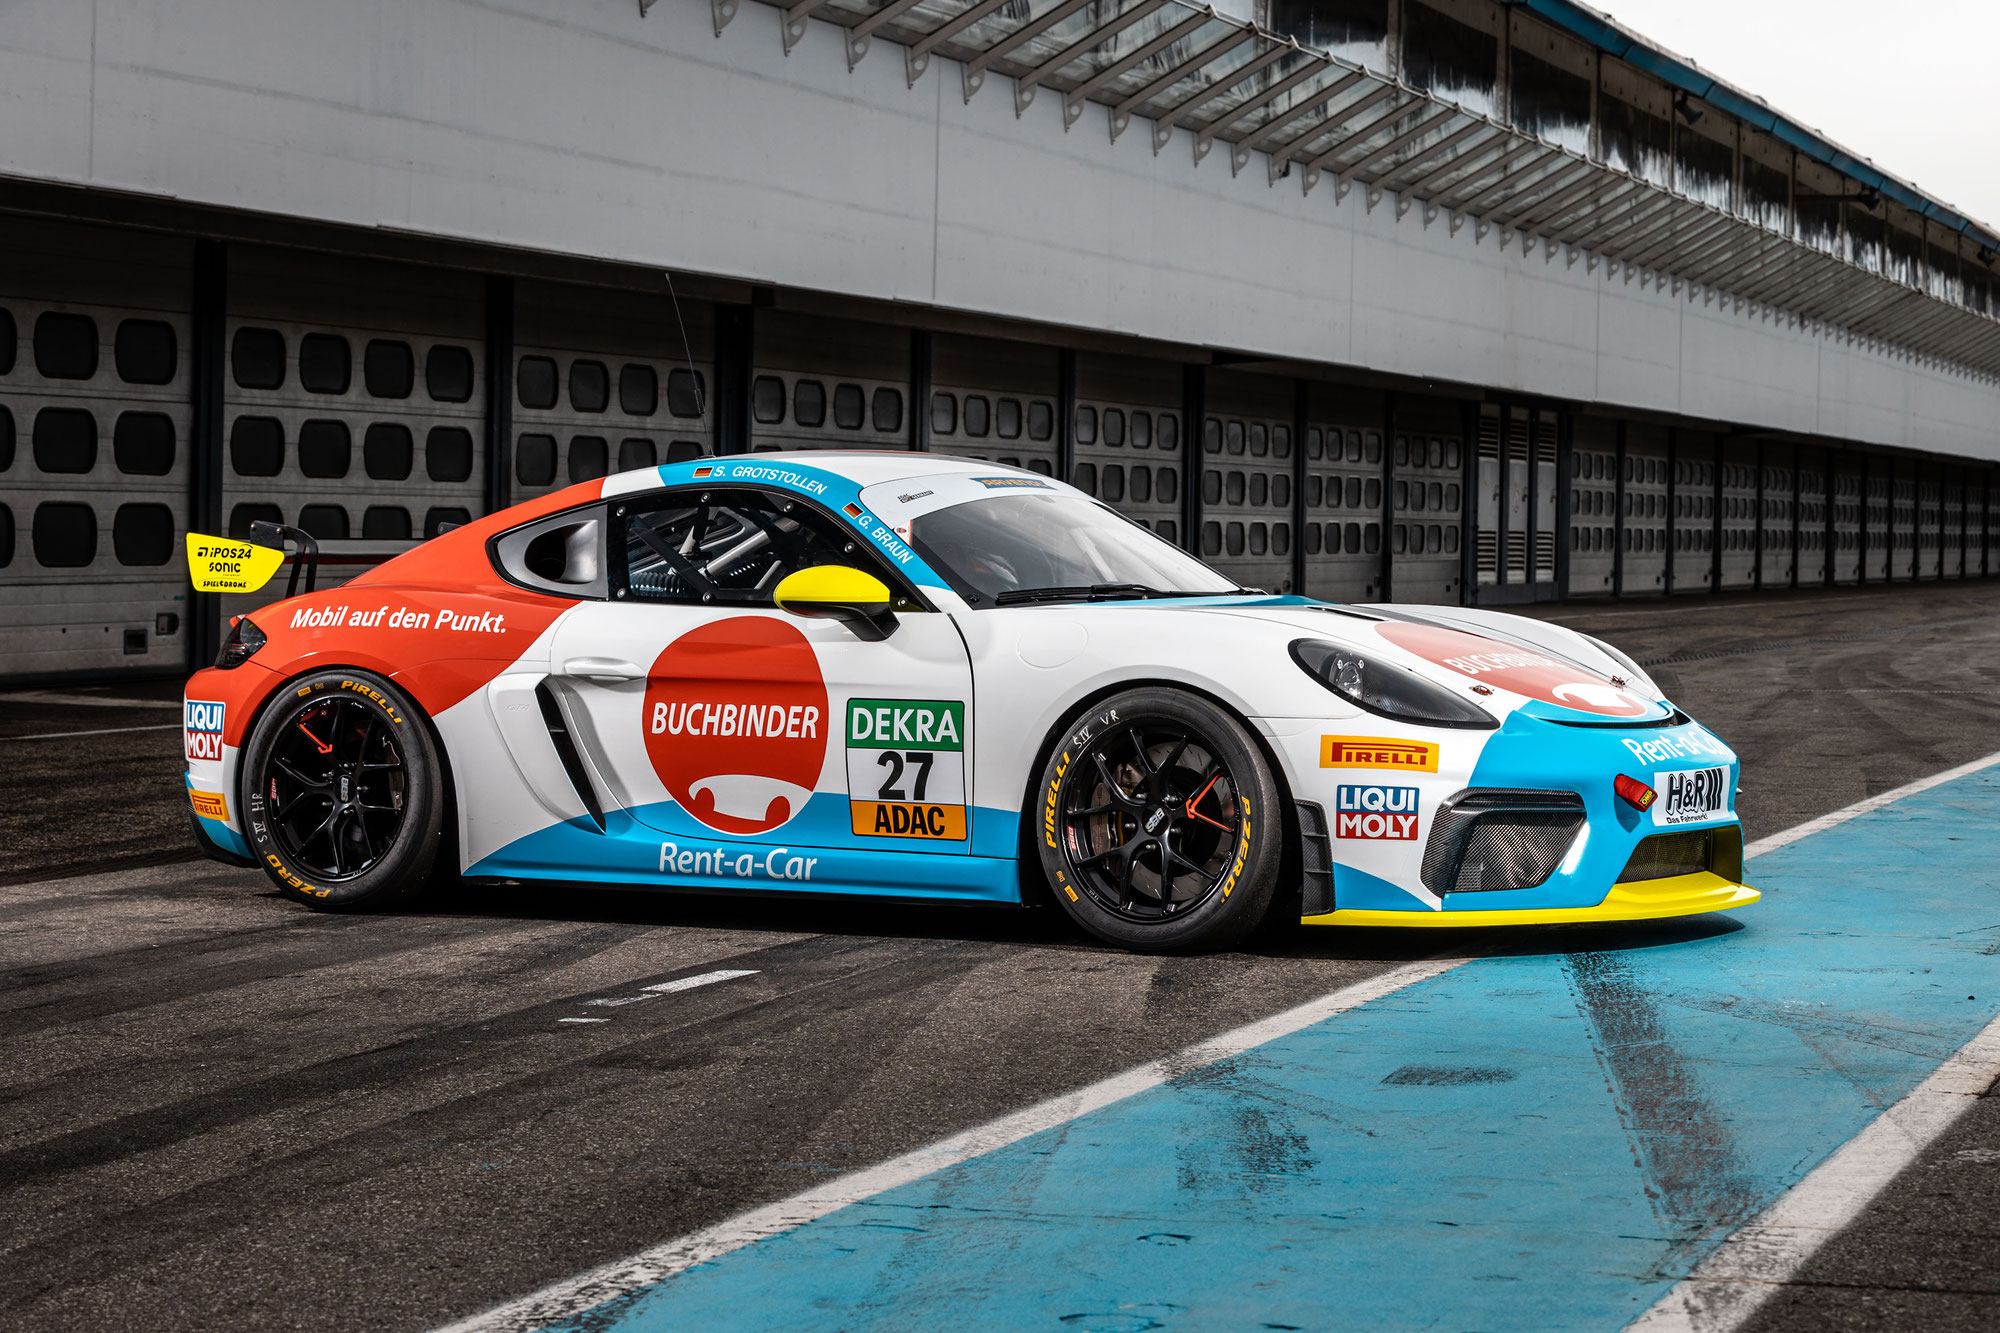 Team Buchbinder Rent-a-Car startet mit Porsche 718 Cayman in der ADAC GT4 Germany